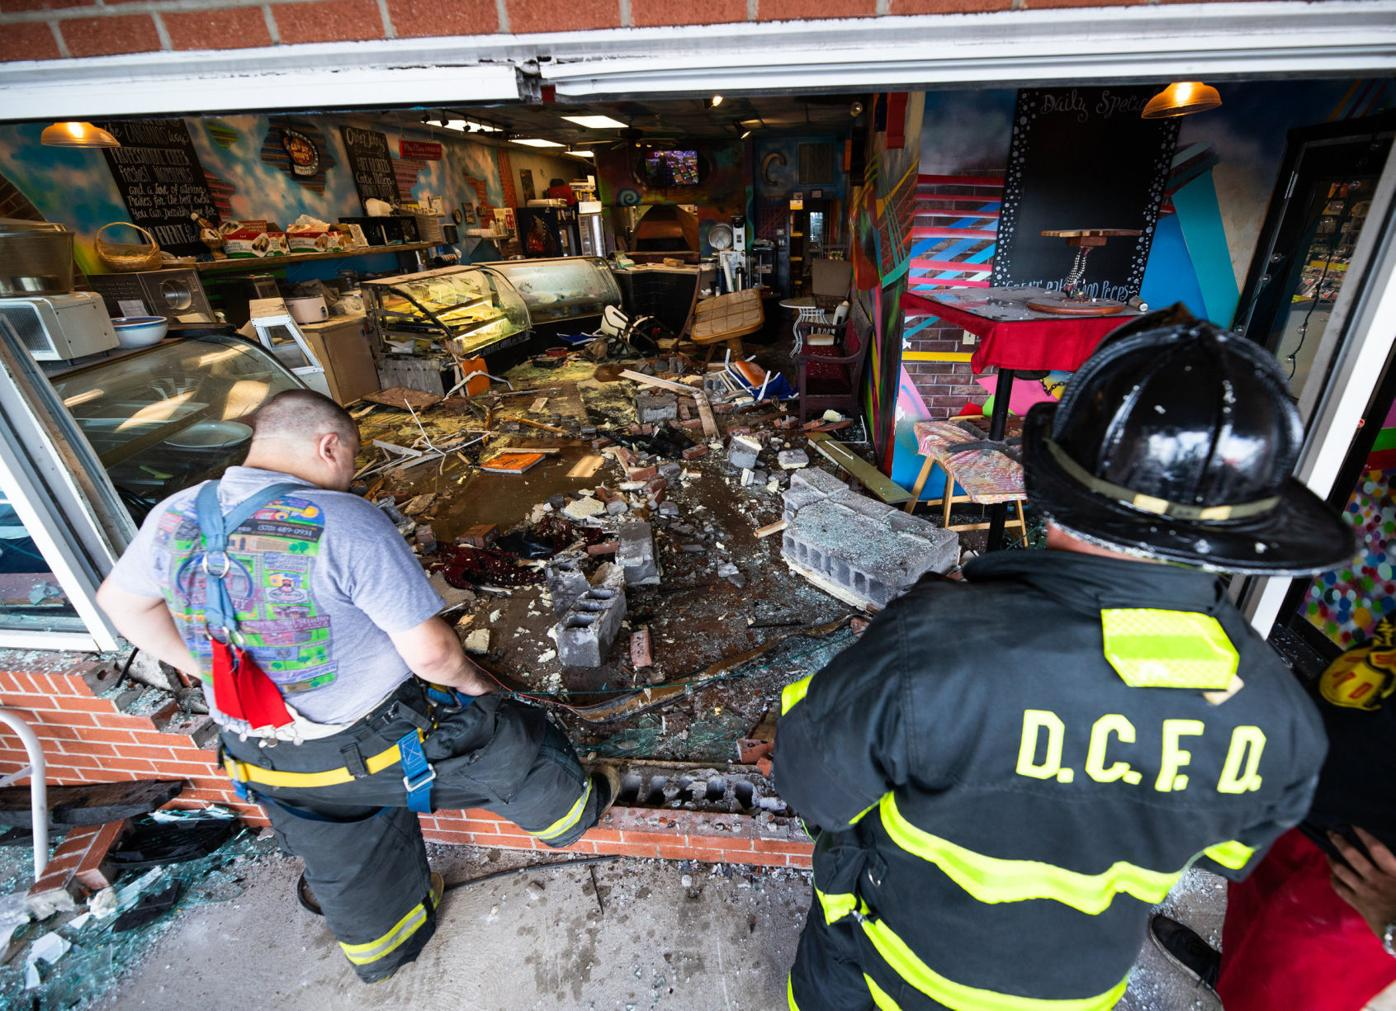 Dickson City firefighters assess the damage at Cangiano's on the Scranton-Carbondale Highway after a Subaru Outback smashed through the pizza parlor's storefront on Monday. Frank Wilkes Lesnefsky / Staff Photo